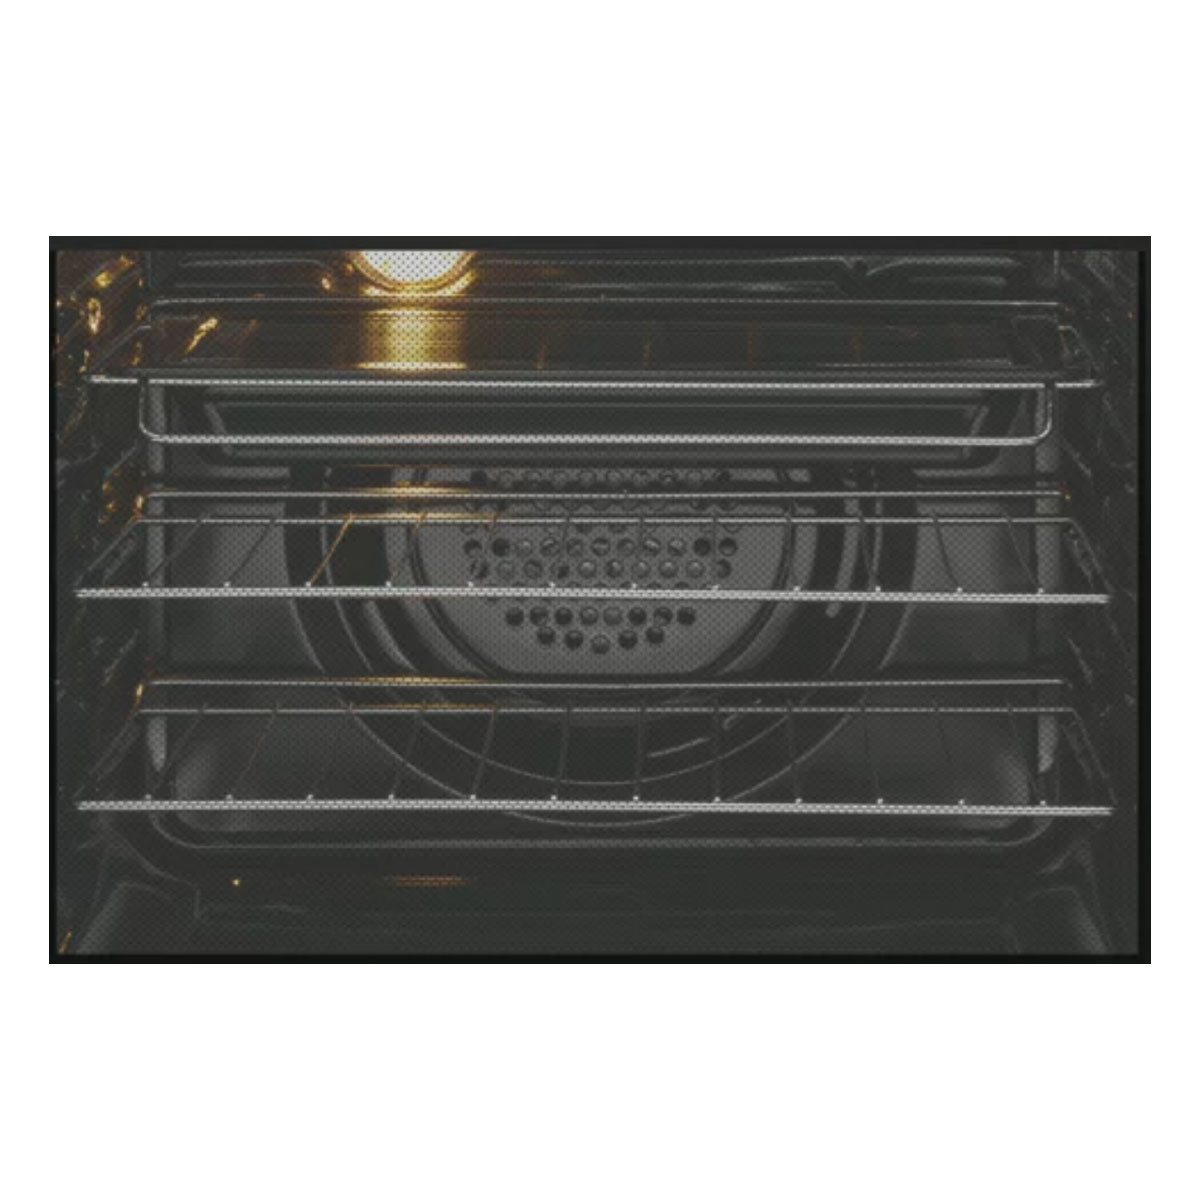 Chef CVE612WA Electric Wall Oven 31690